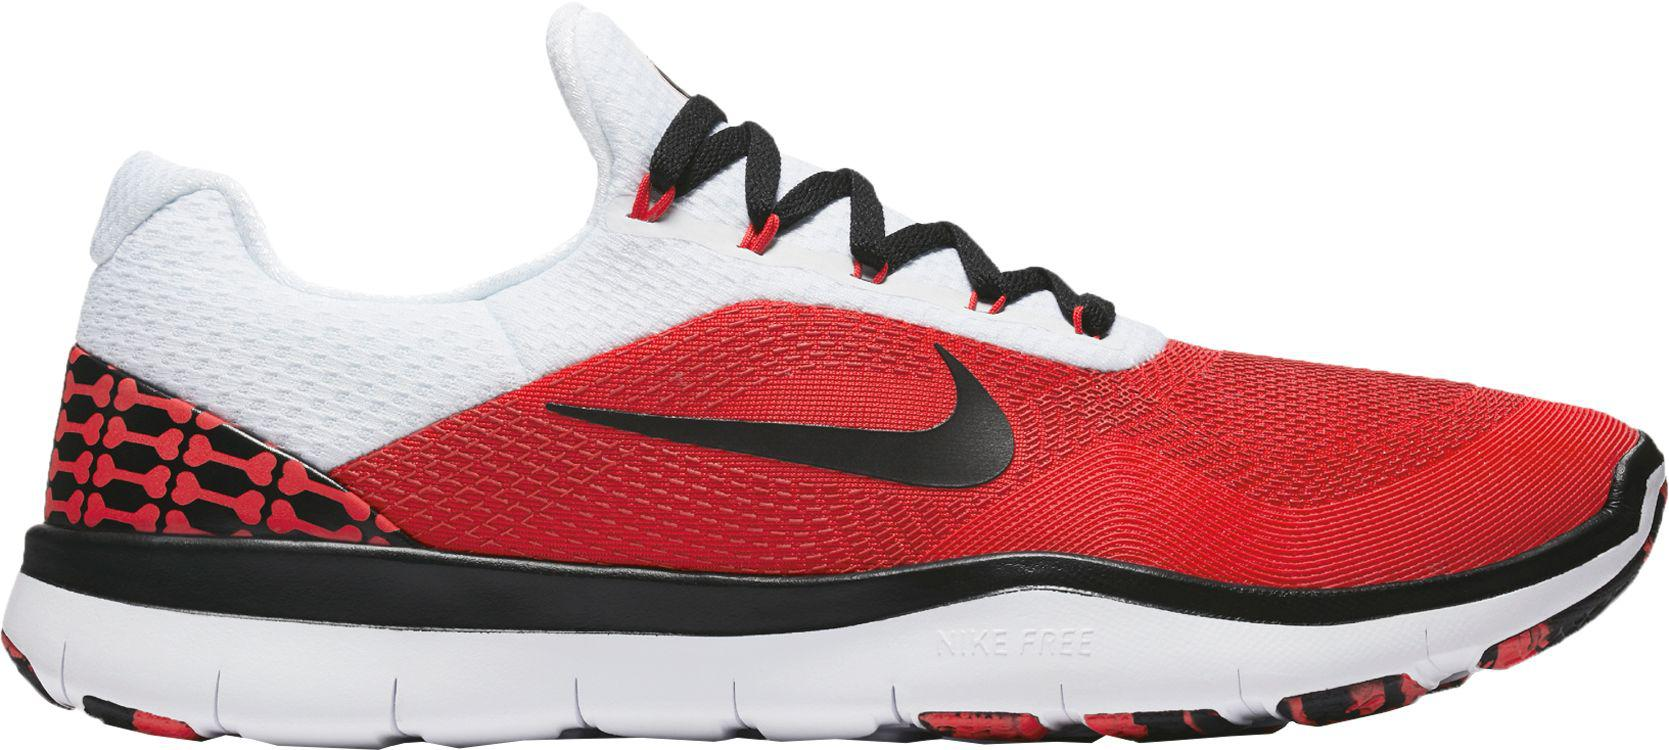 the latest 0392f 781d0 Nike - Red Free Trainer V7 Week Zero Georgia Edition Training Shoes for Men  - Lyst